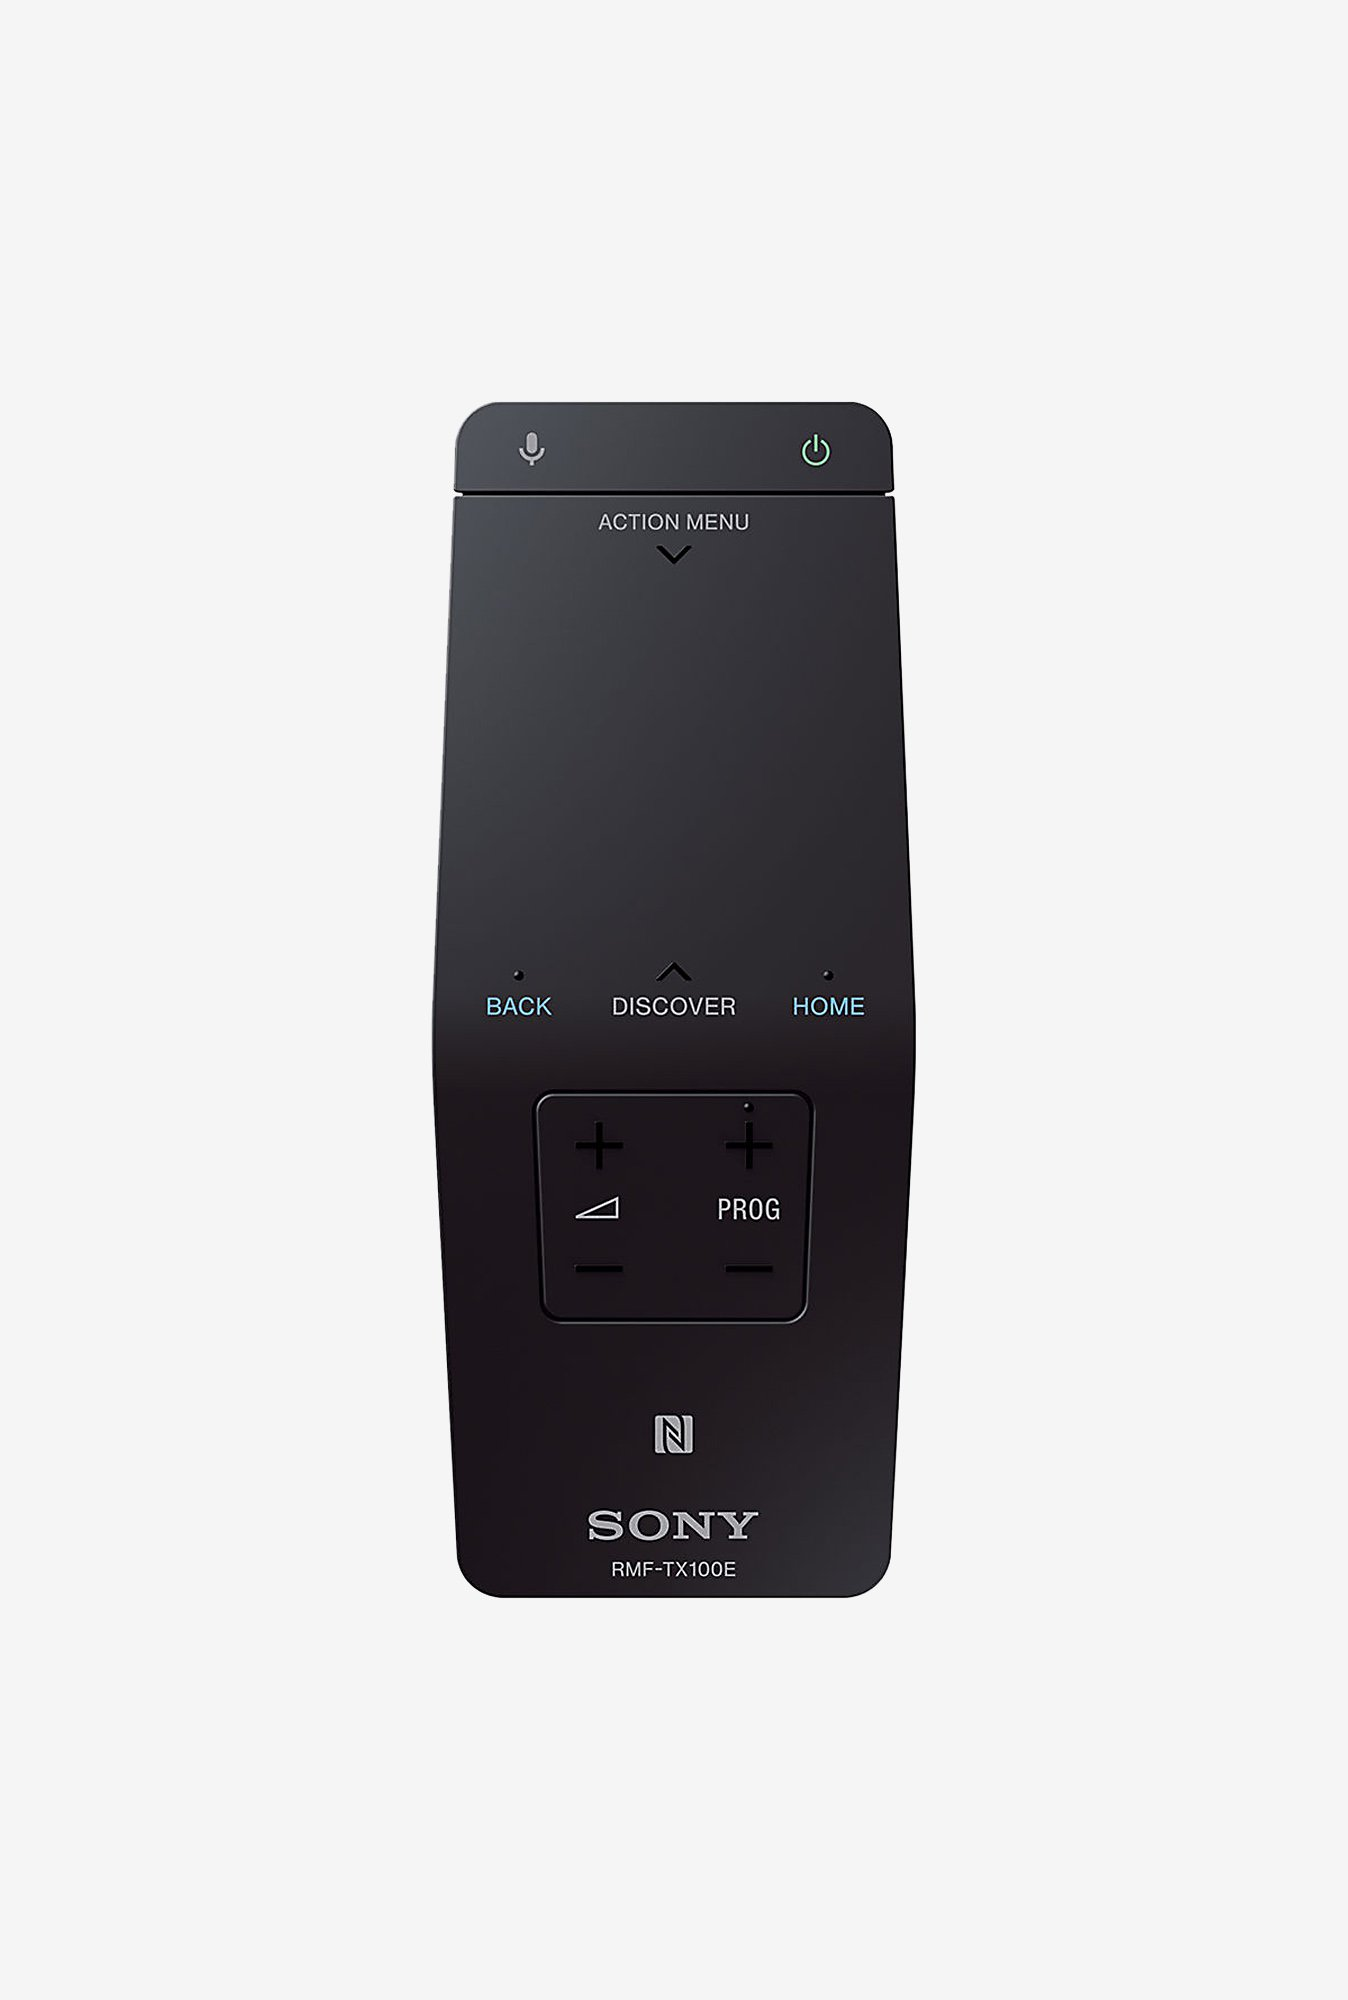 Sony RMF-TX100E GE1 TV Remote Control (Black)